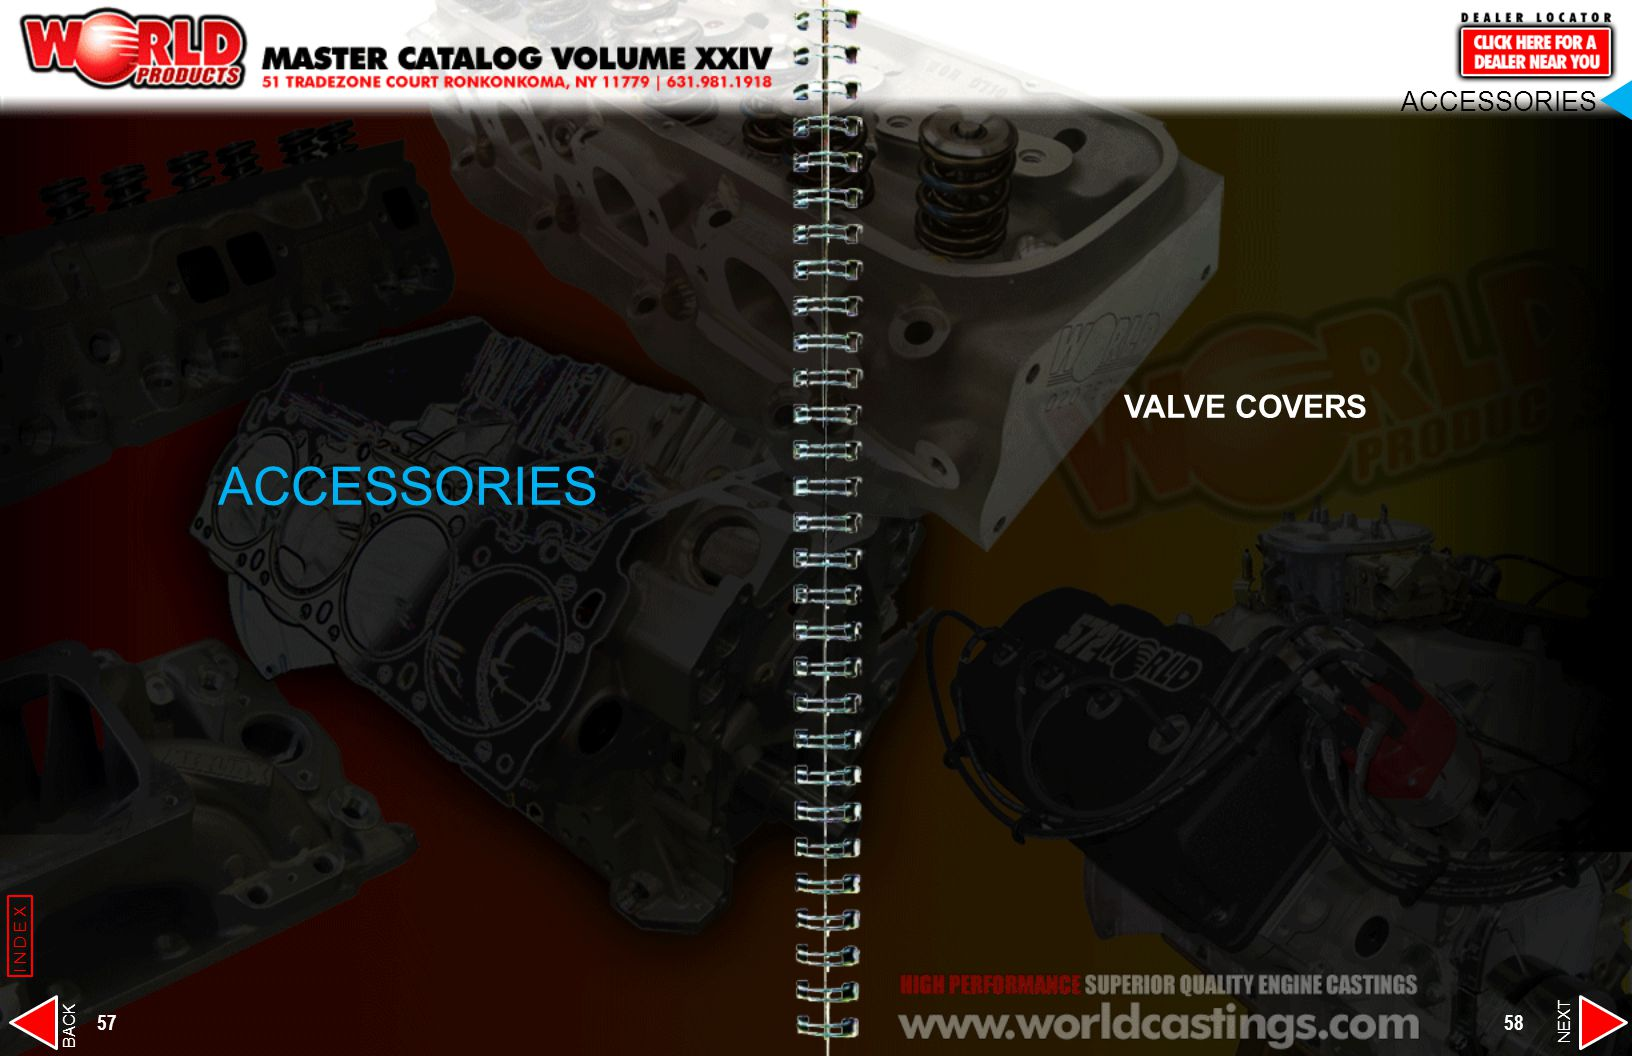 ACCESSORIES VALVE COVERS. ACCESSORIES. INDEX. BACK. NEXT.